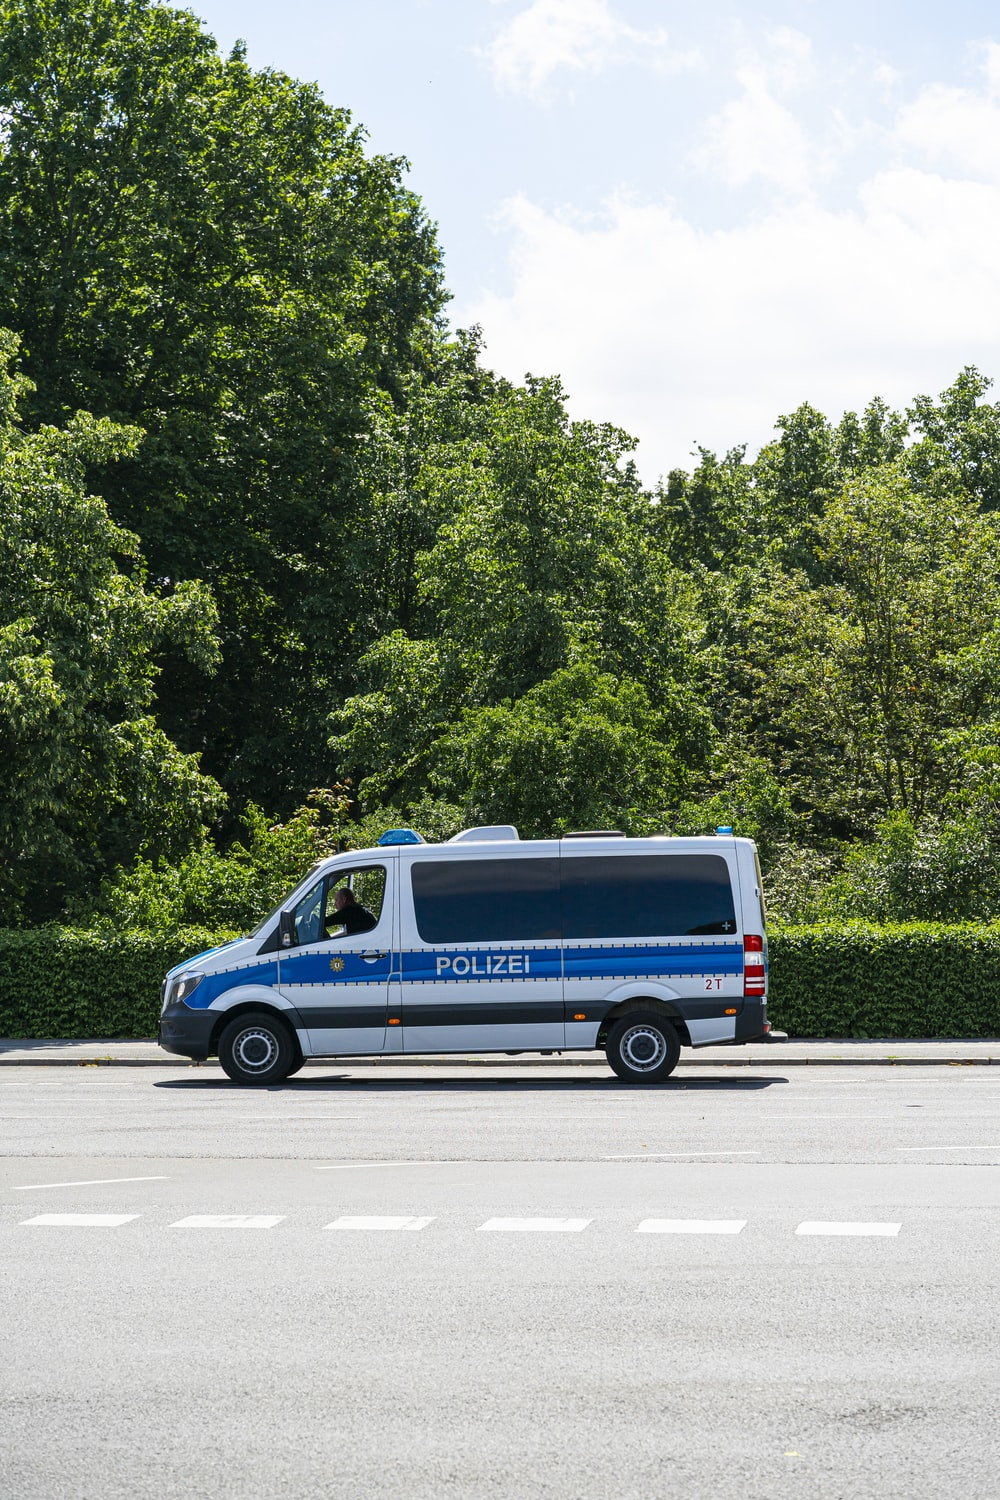 blue and white van on road near green trees during daytime